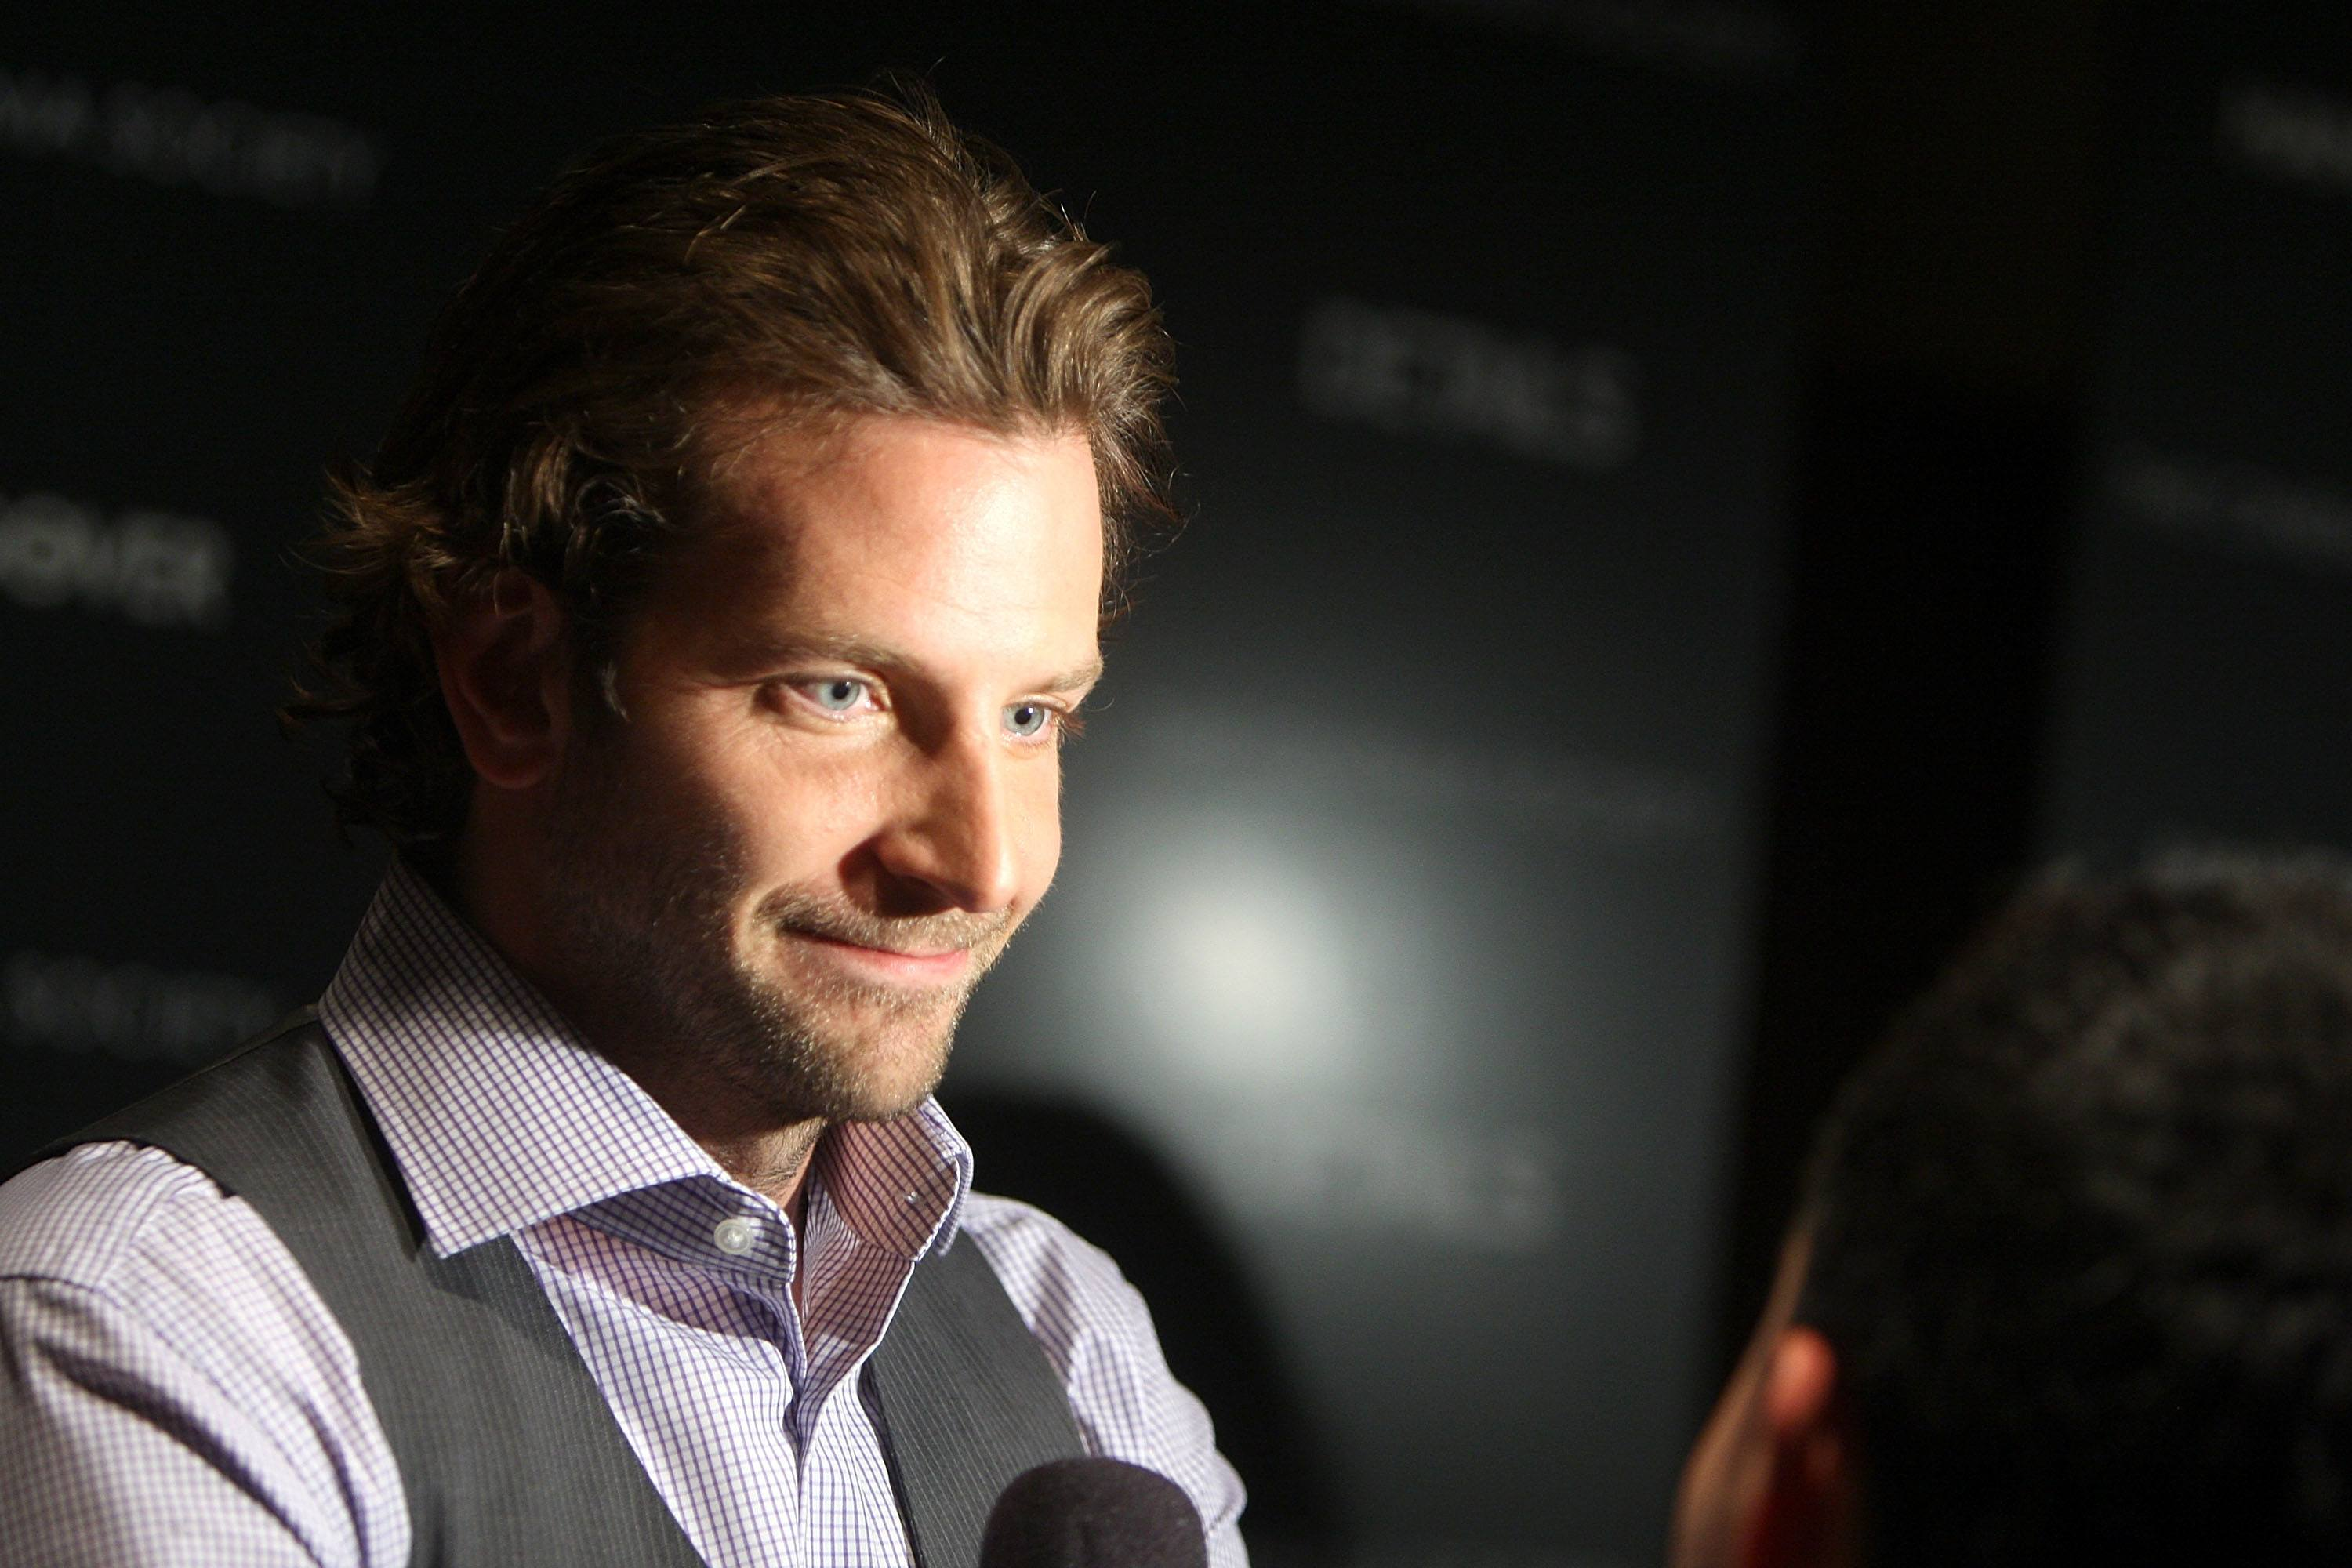 Bradley Cooper attends a screening of 'The Hangover' in 2009.